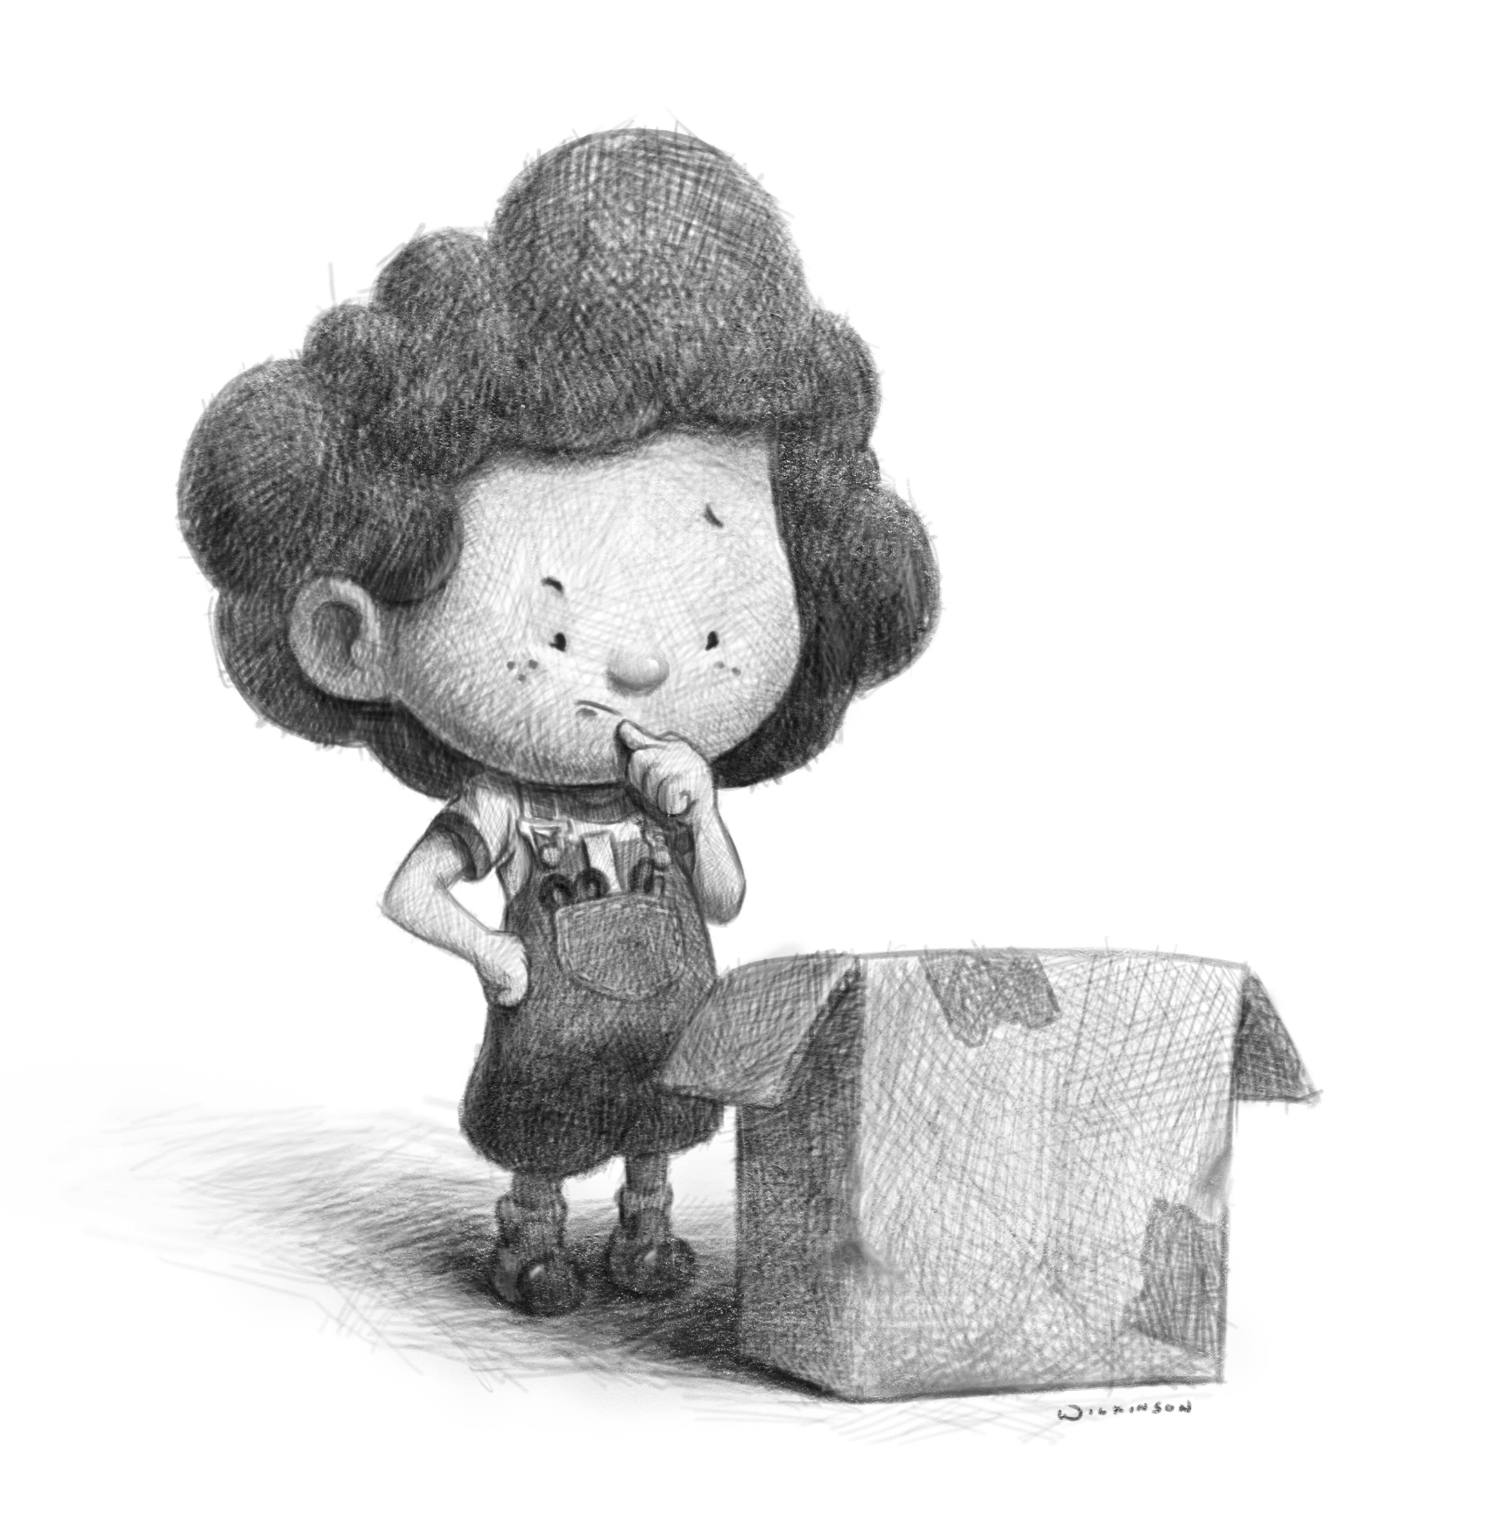 """Cardboard Adventures Sketch - """"What to make?"""""""